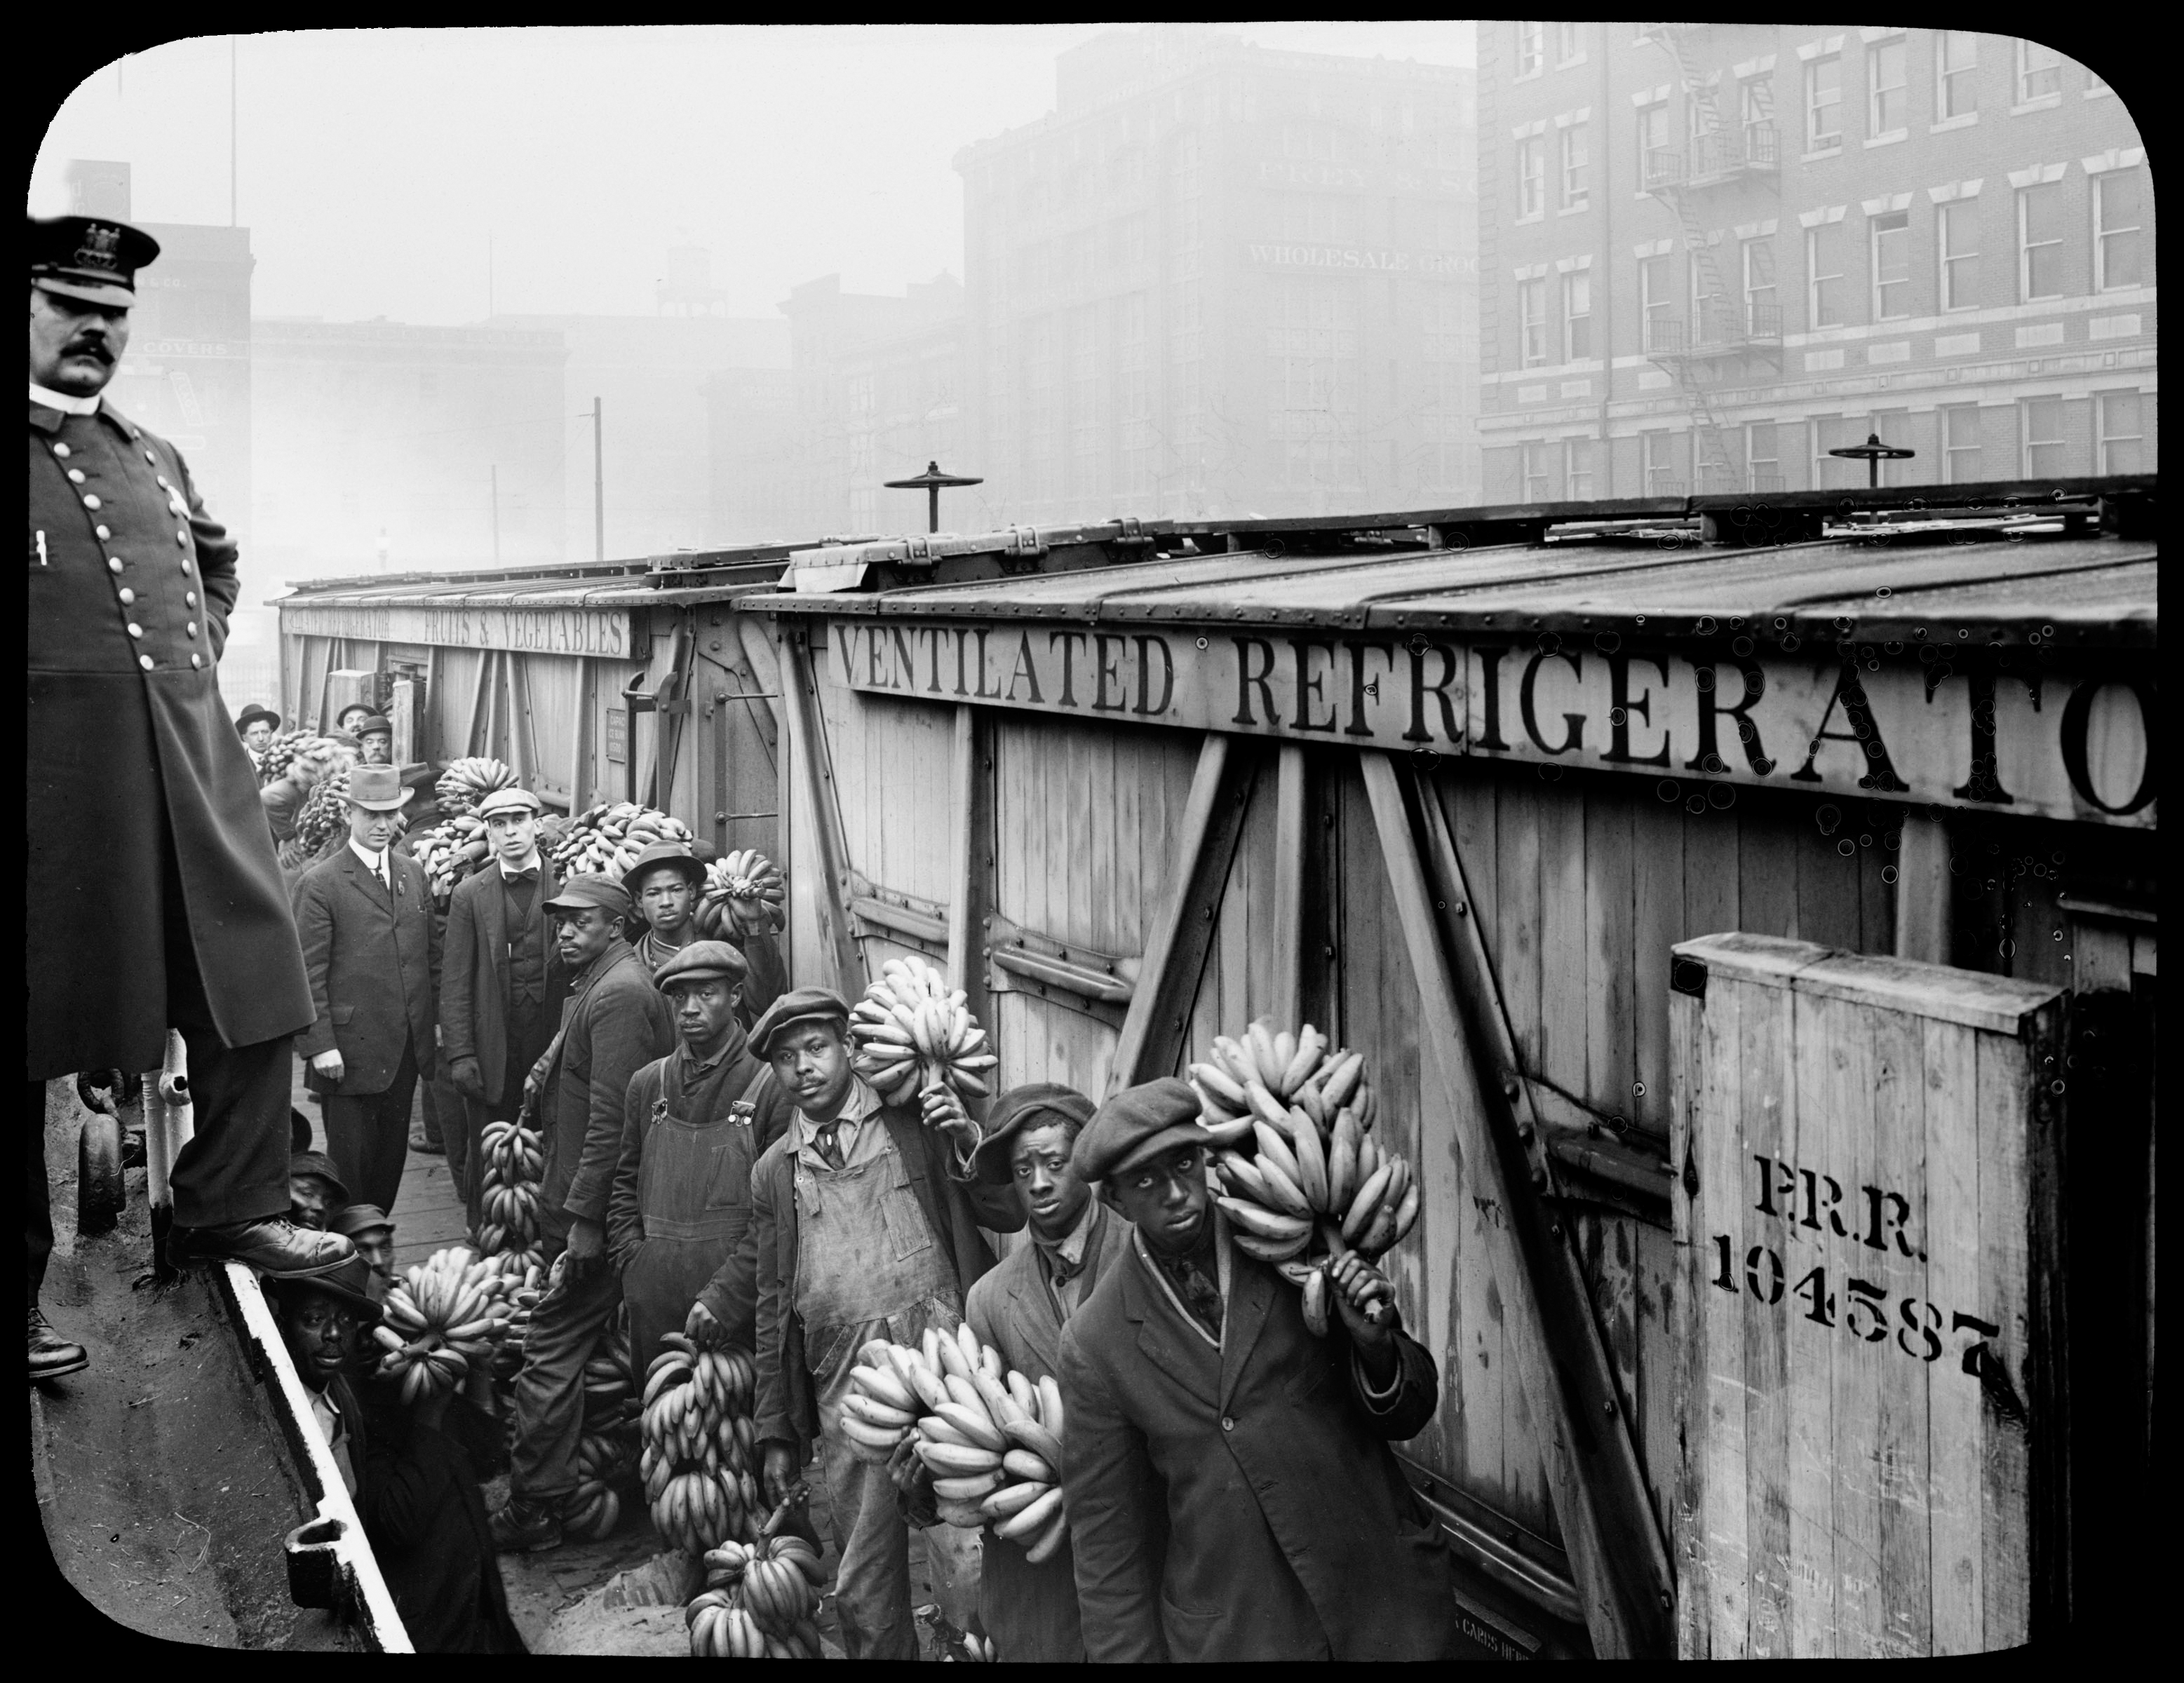 Photograph of the Inspection of Bananas in Baltimore, Maryland (1910)